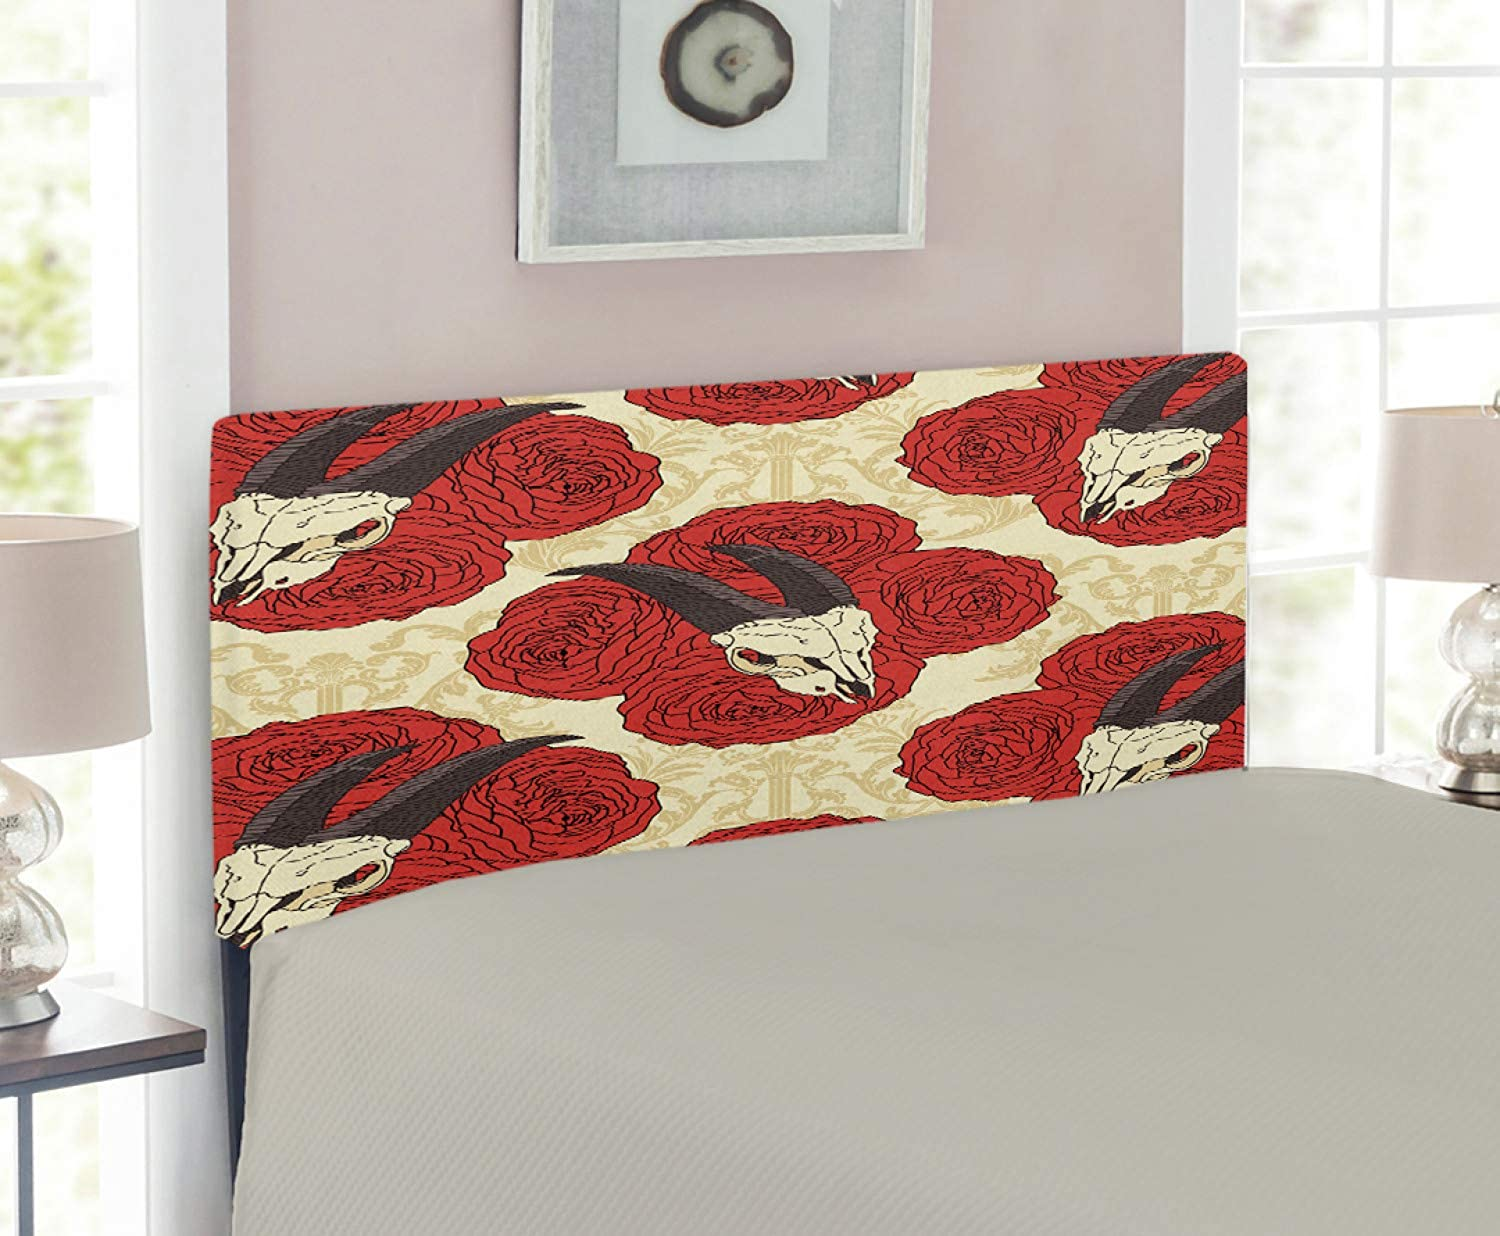 Lunarable Gothic Headboard for Twin Size Bed, Goat Skull on Red pinks Horn Pattern Animal Bone Traditional Symbol Art Print, Upholstered Decorative Metal Headboard with Memory Foam, Beige Vermilion